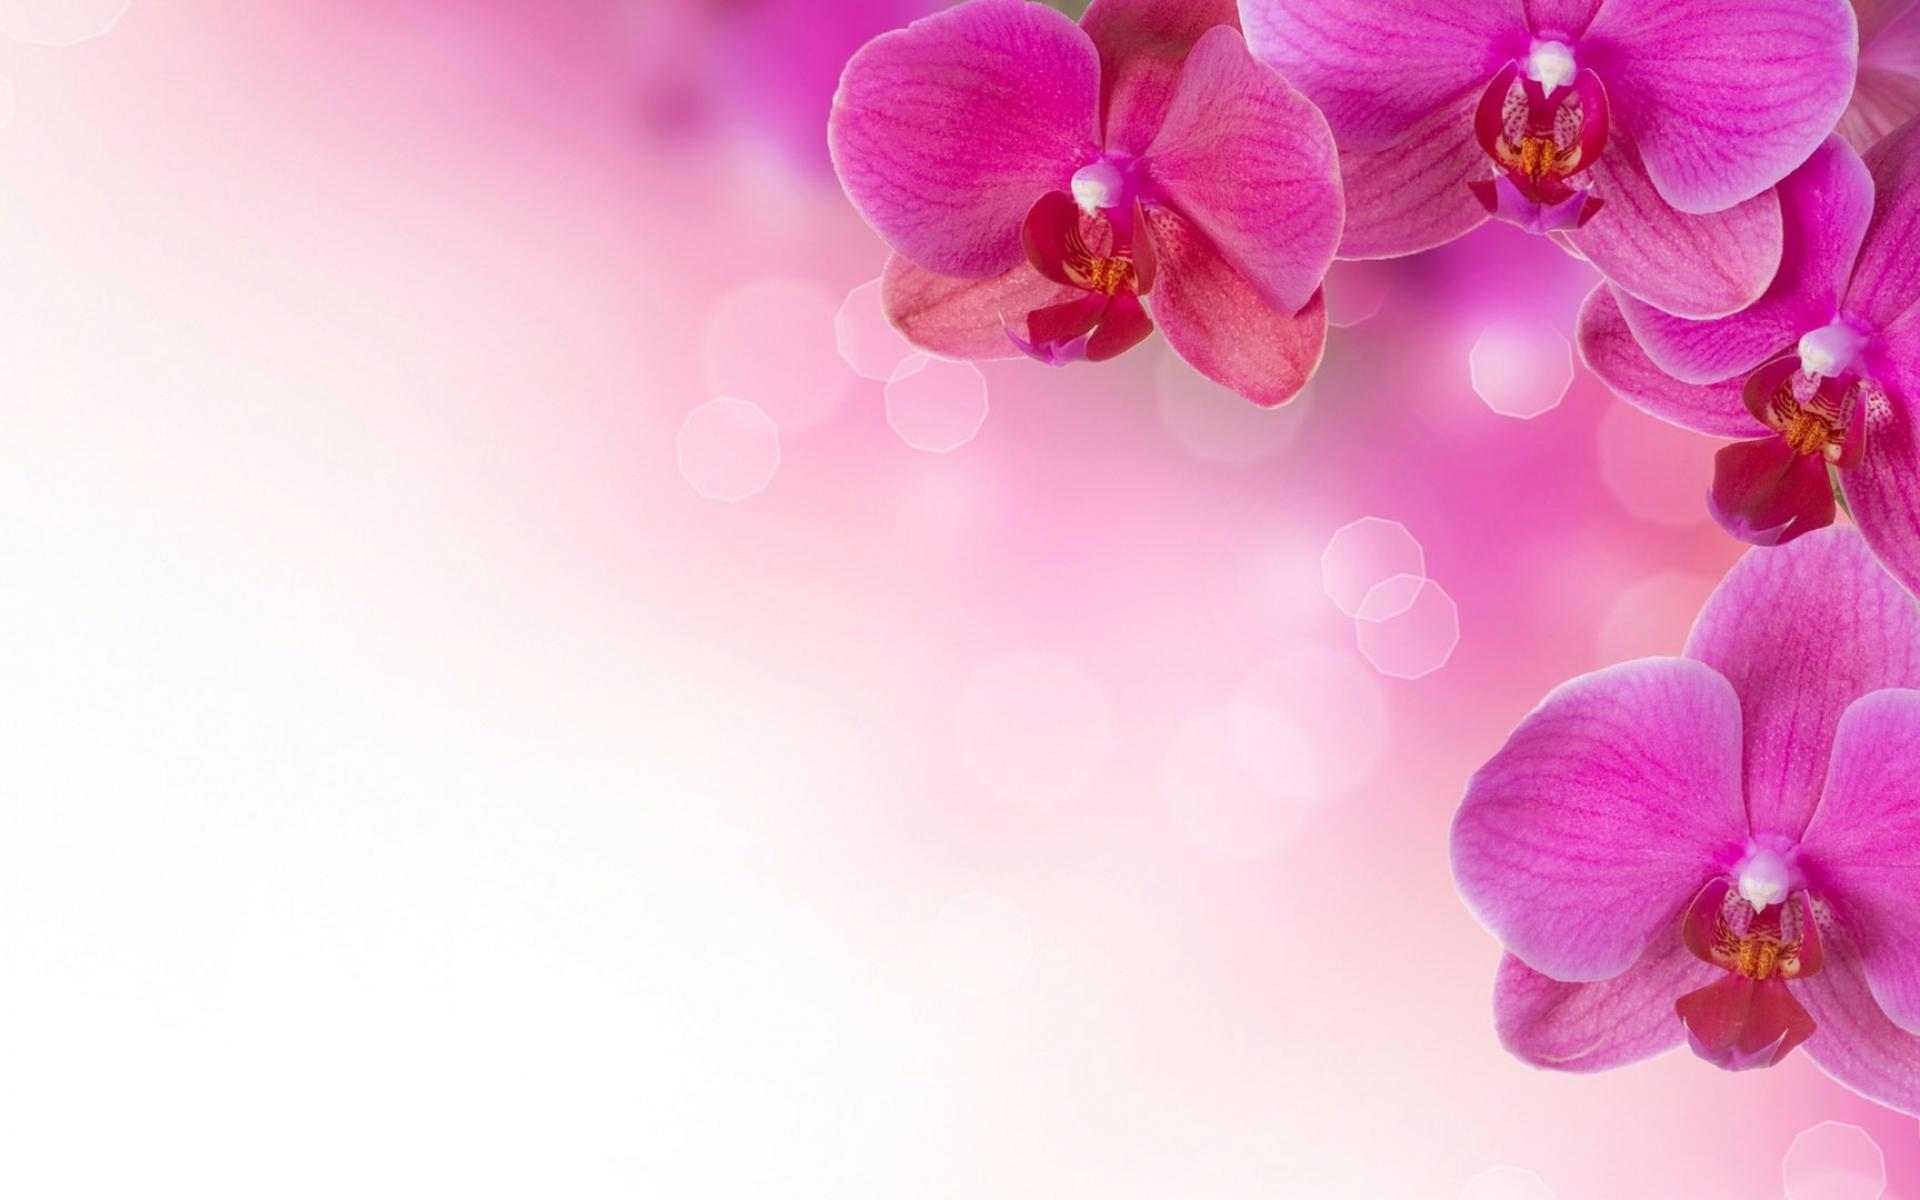 Pink Flower Image Backgrounds